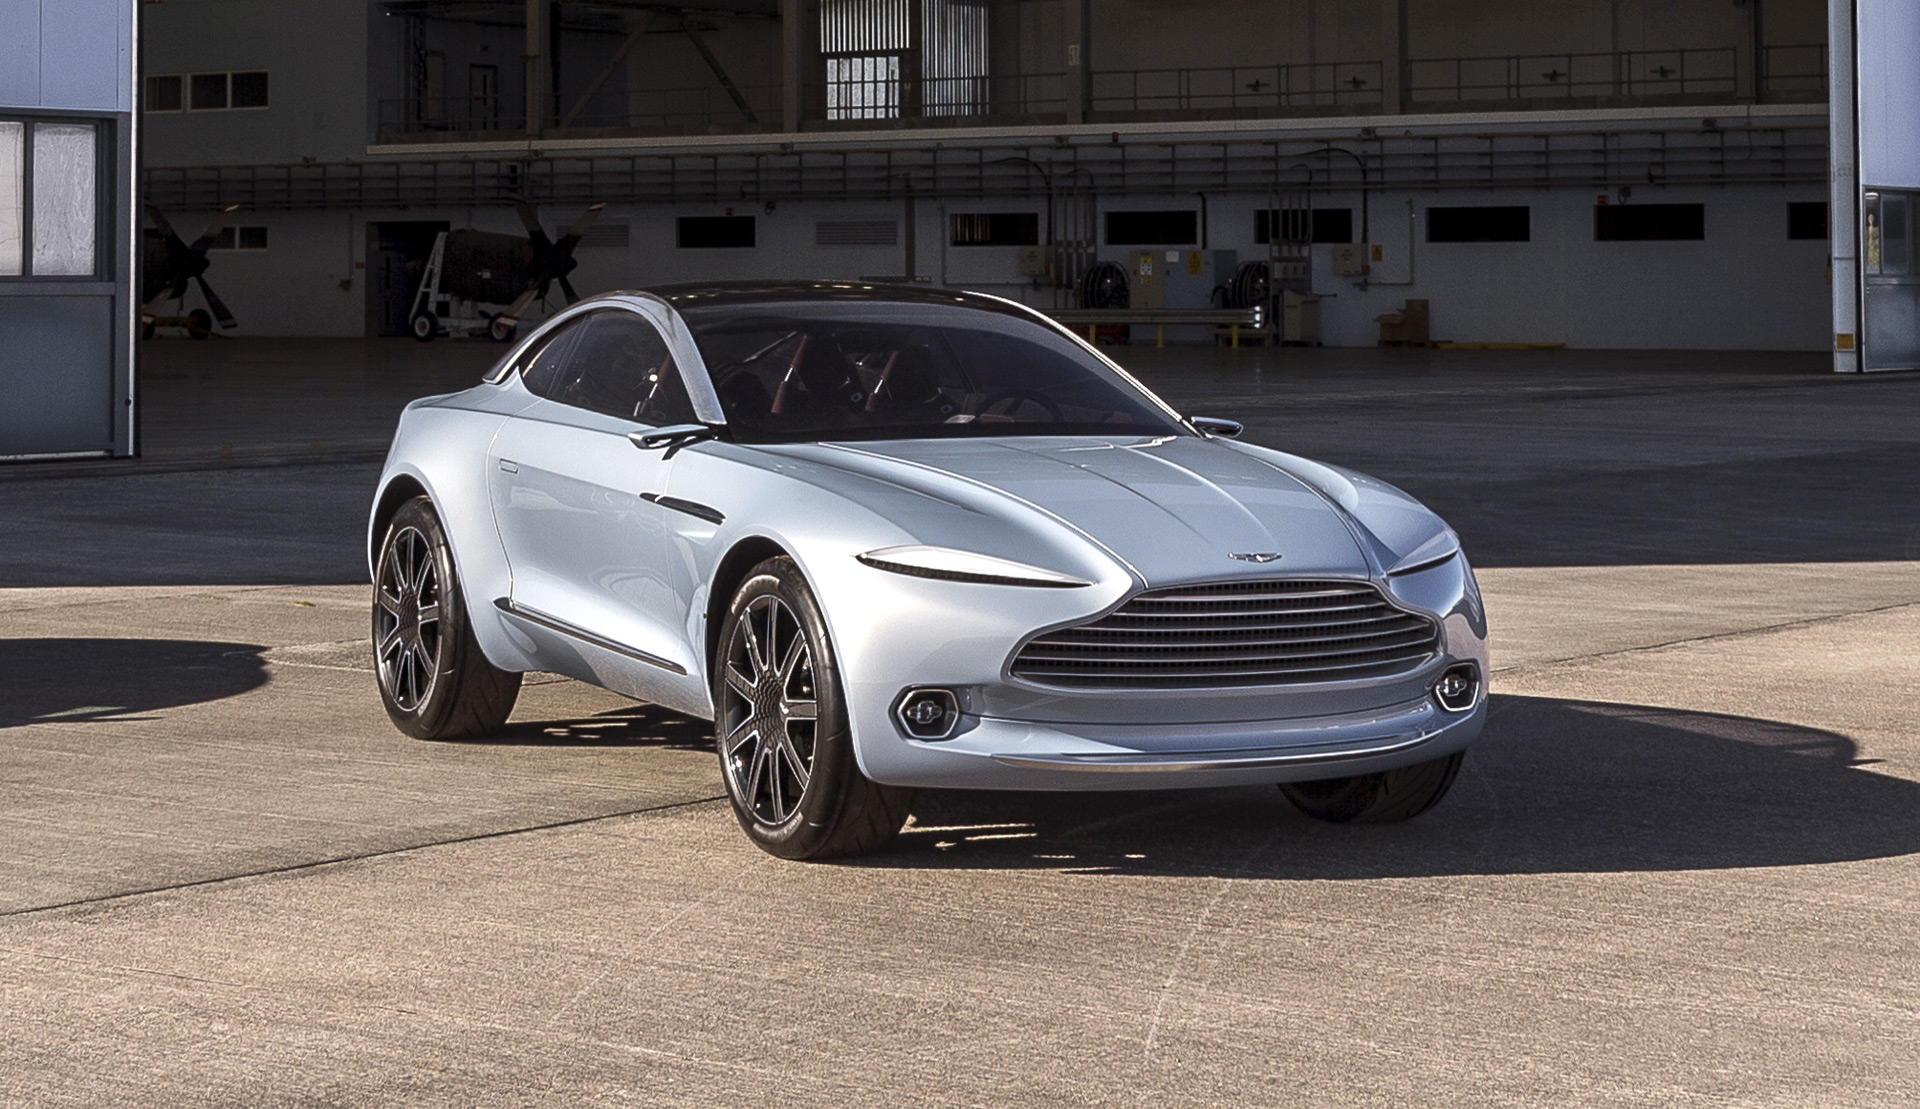 Aston Martin S Full Lineup To Offer Hybrid Tech Mid Engine Supercar Tipped Feature V 6